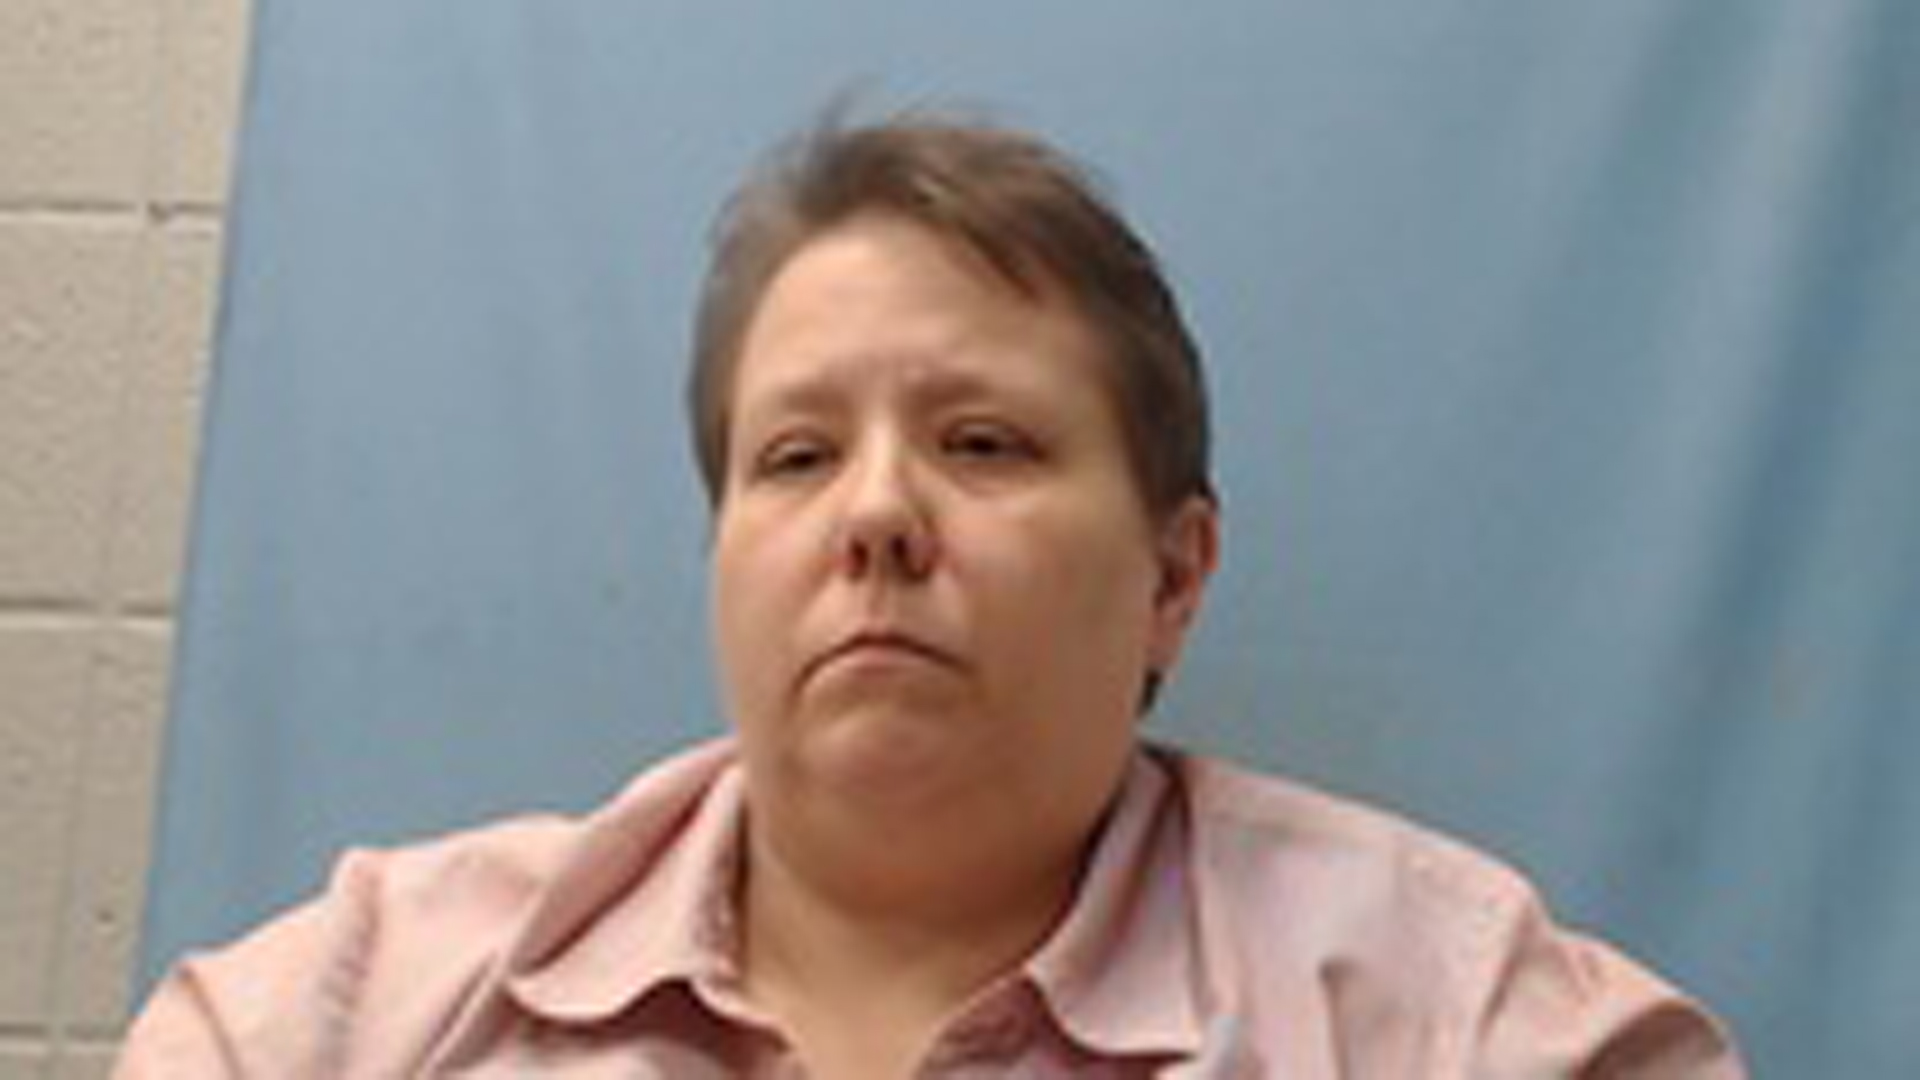 Jerri Kelly is seen in a booking photo released by the Cross County Sheriff's Office.